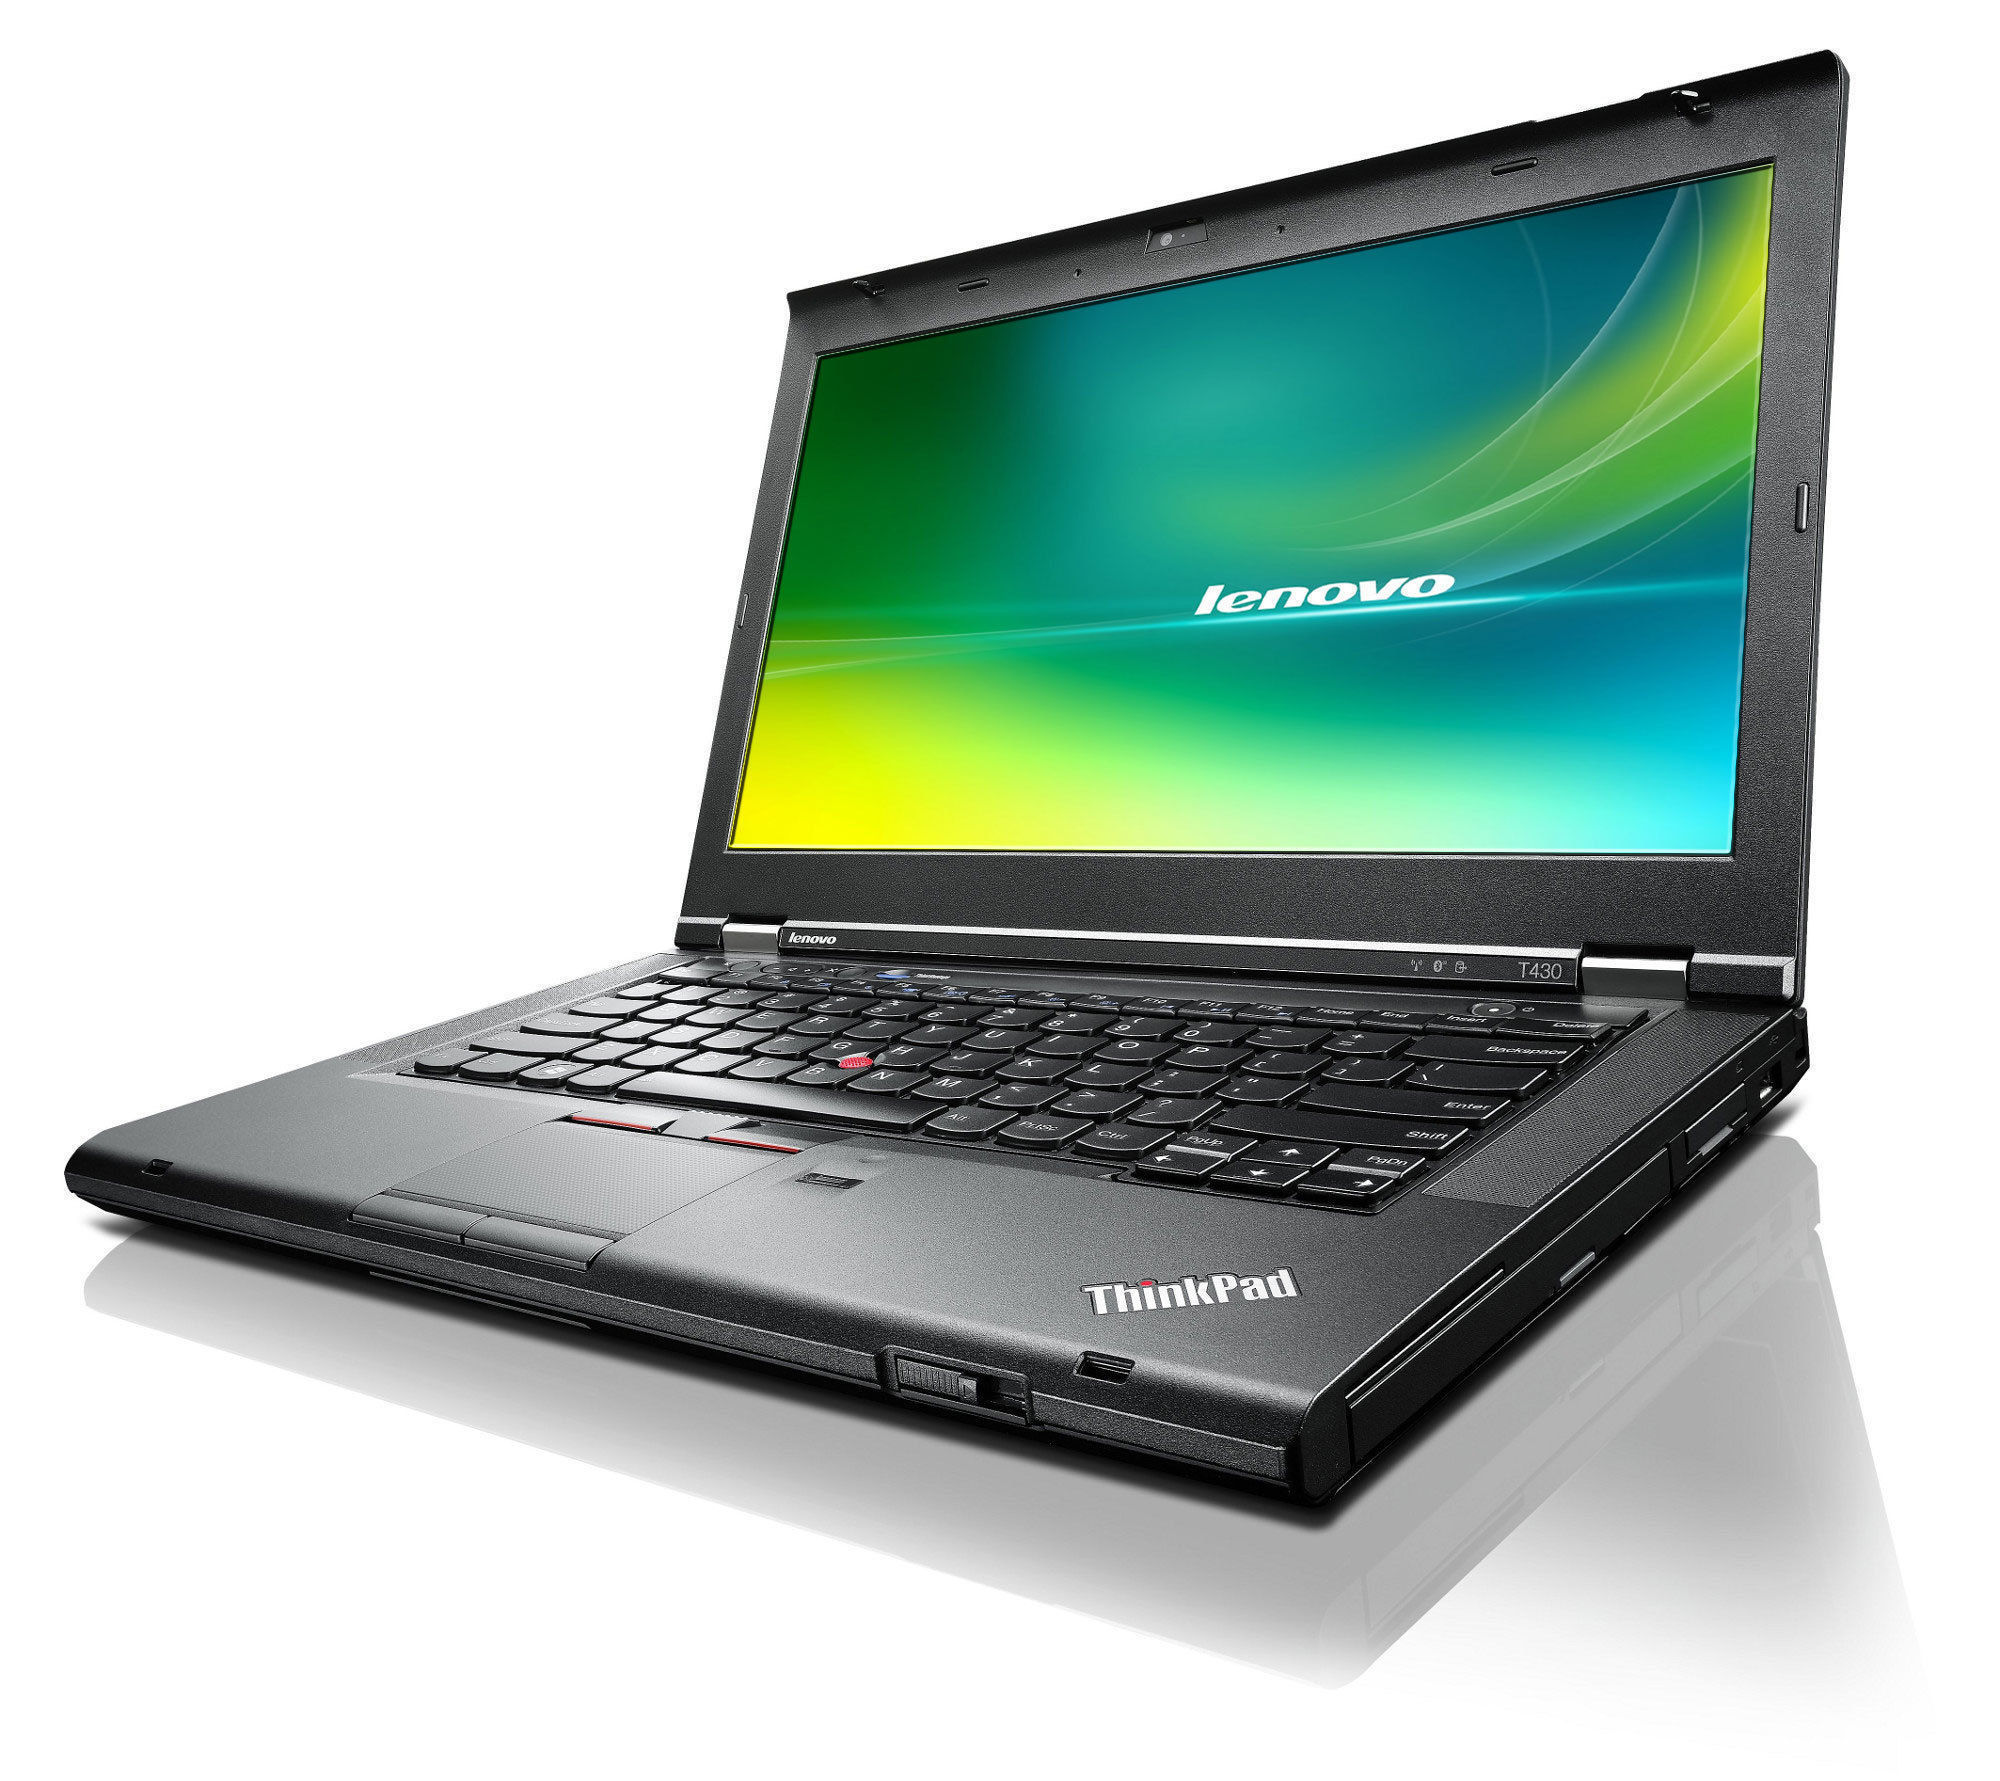 Thinkpad T430 - Intel Core i5 3320M 2.6 Ghz - RAM 4 GO - HDD 320 Go - Aucun - Ecran 14.1'' - Webcam - Windows 7 Professionnel 64 bits